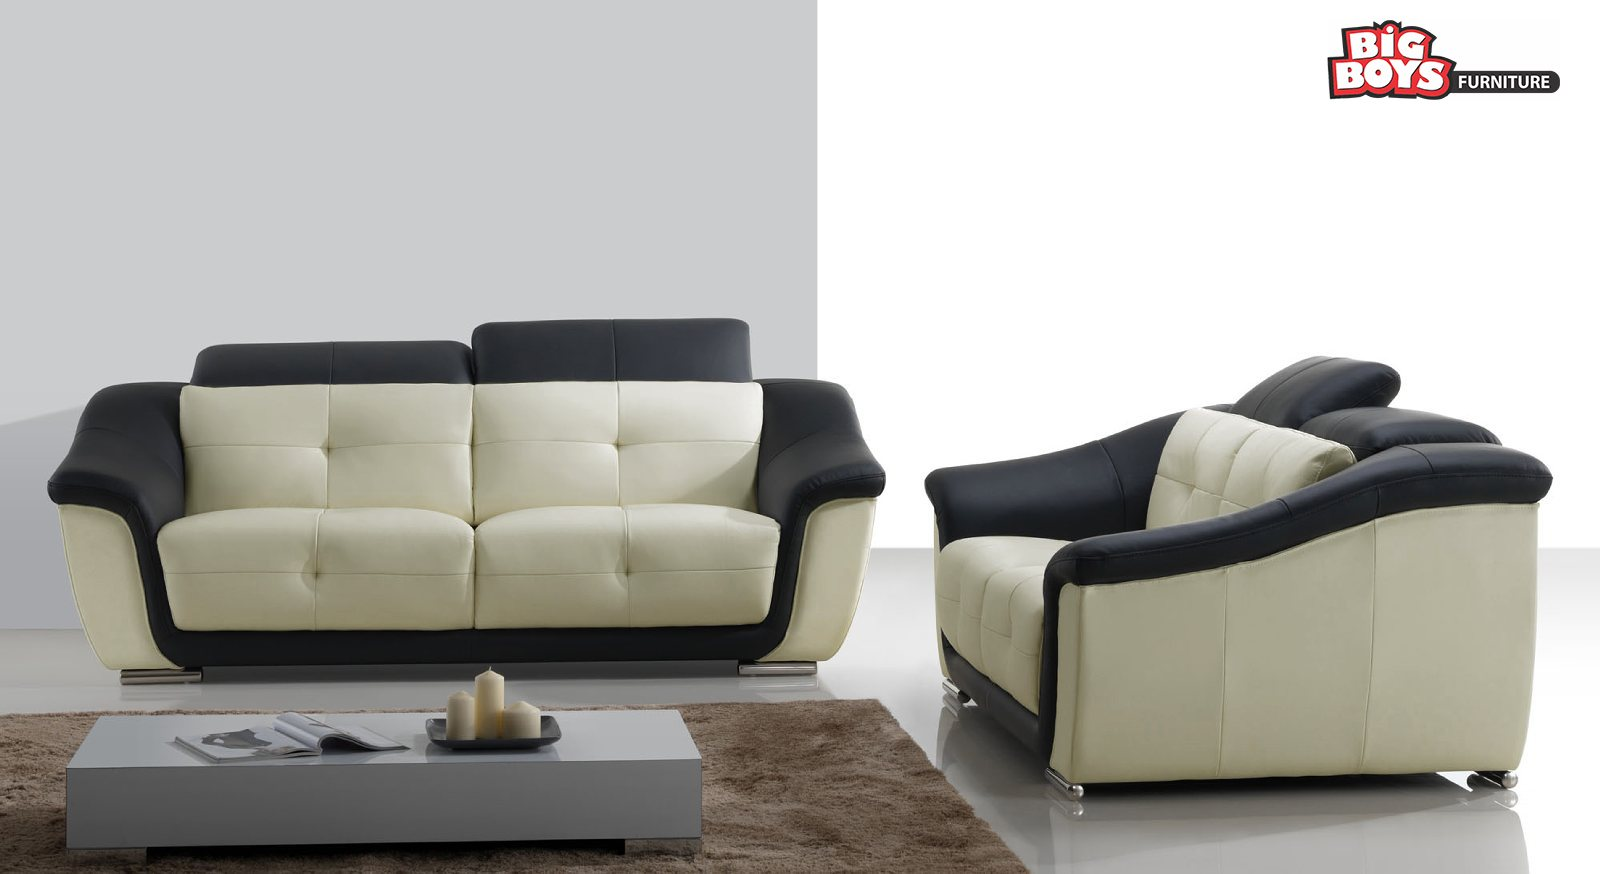 Sofa Sets Big Boys Furniture